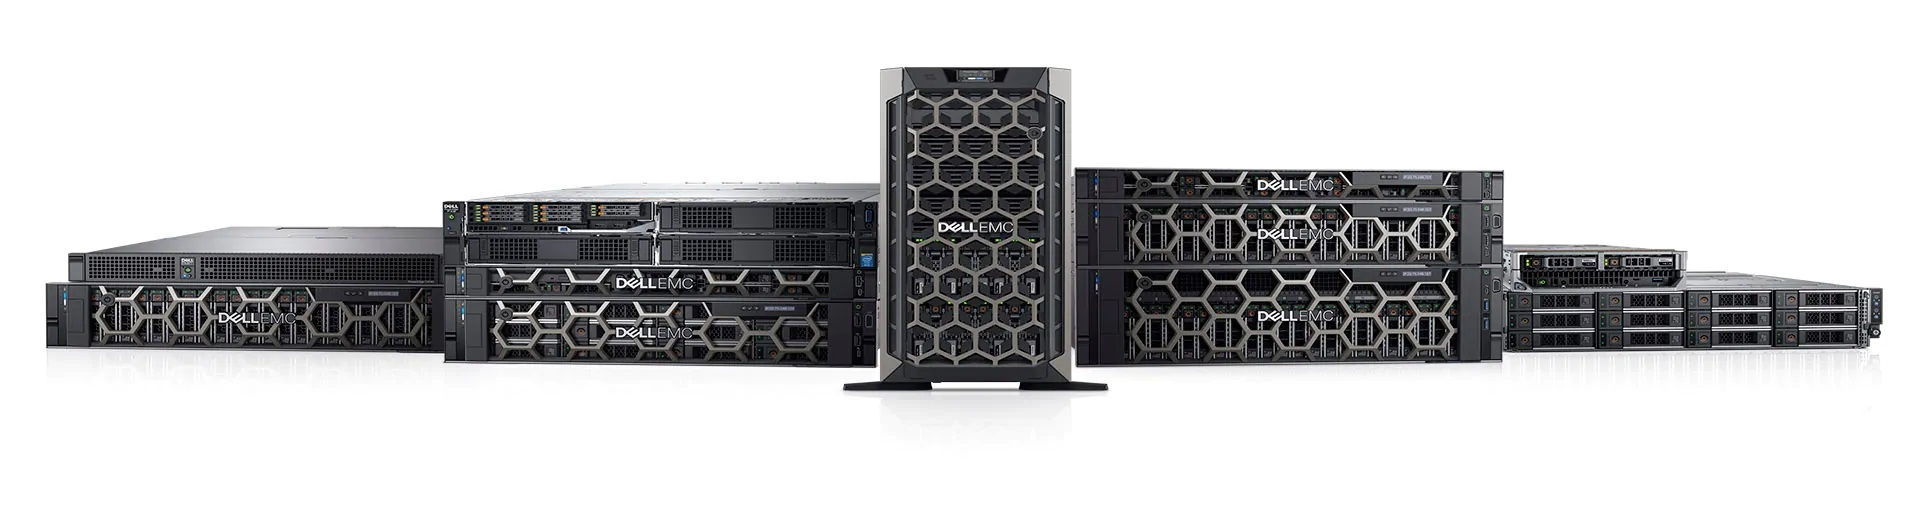 Example of the different Dell servers that are available to purchase